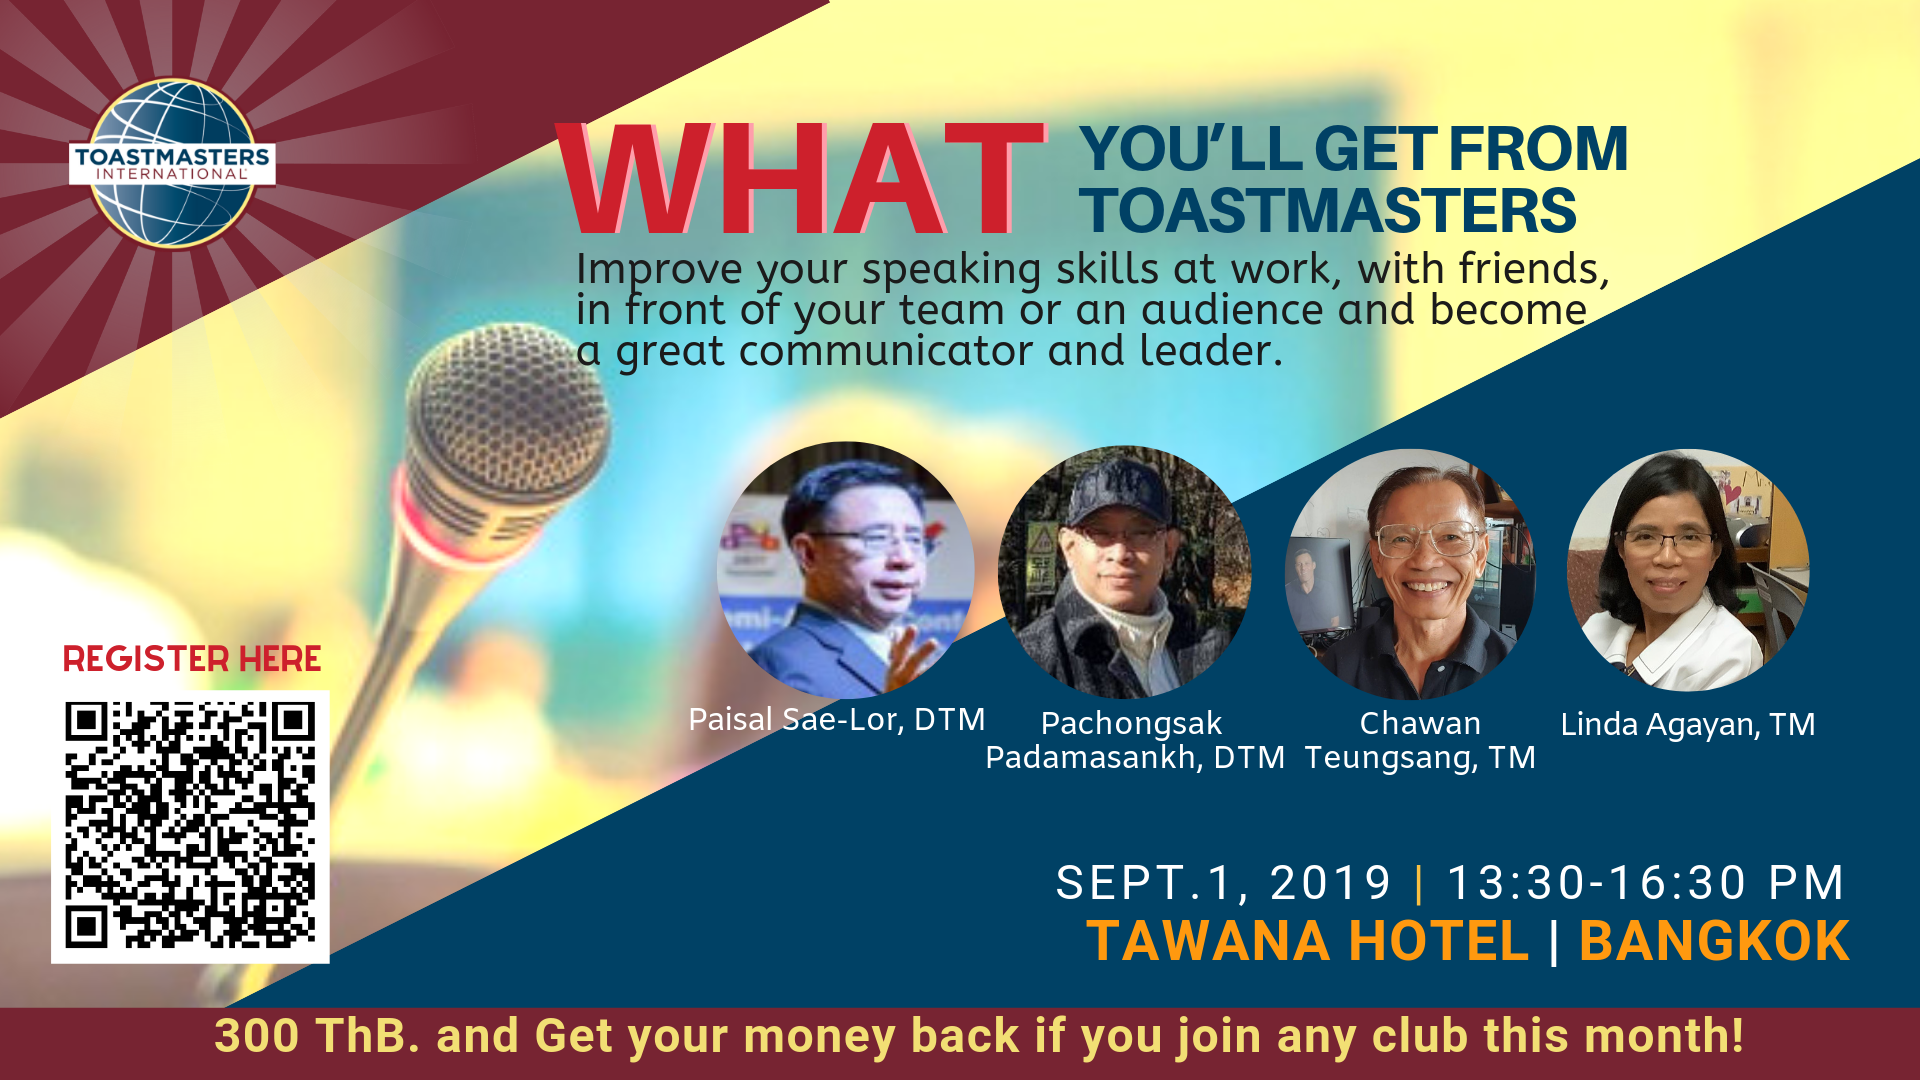 What you'll get from Toastmasters